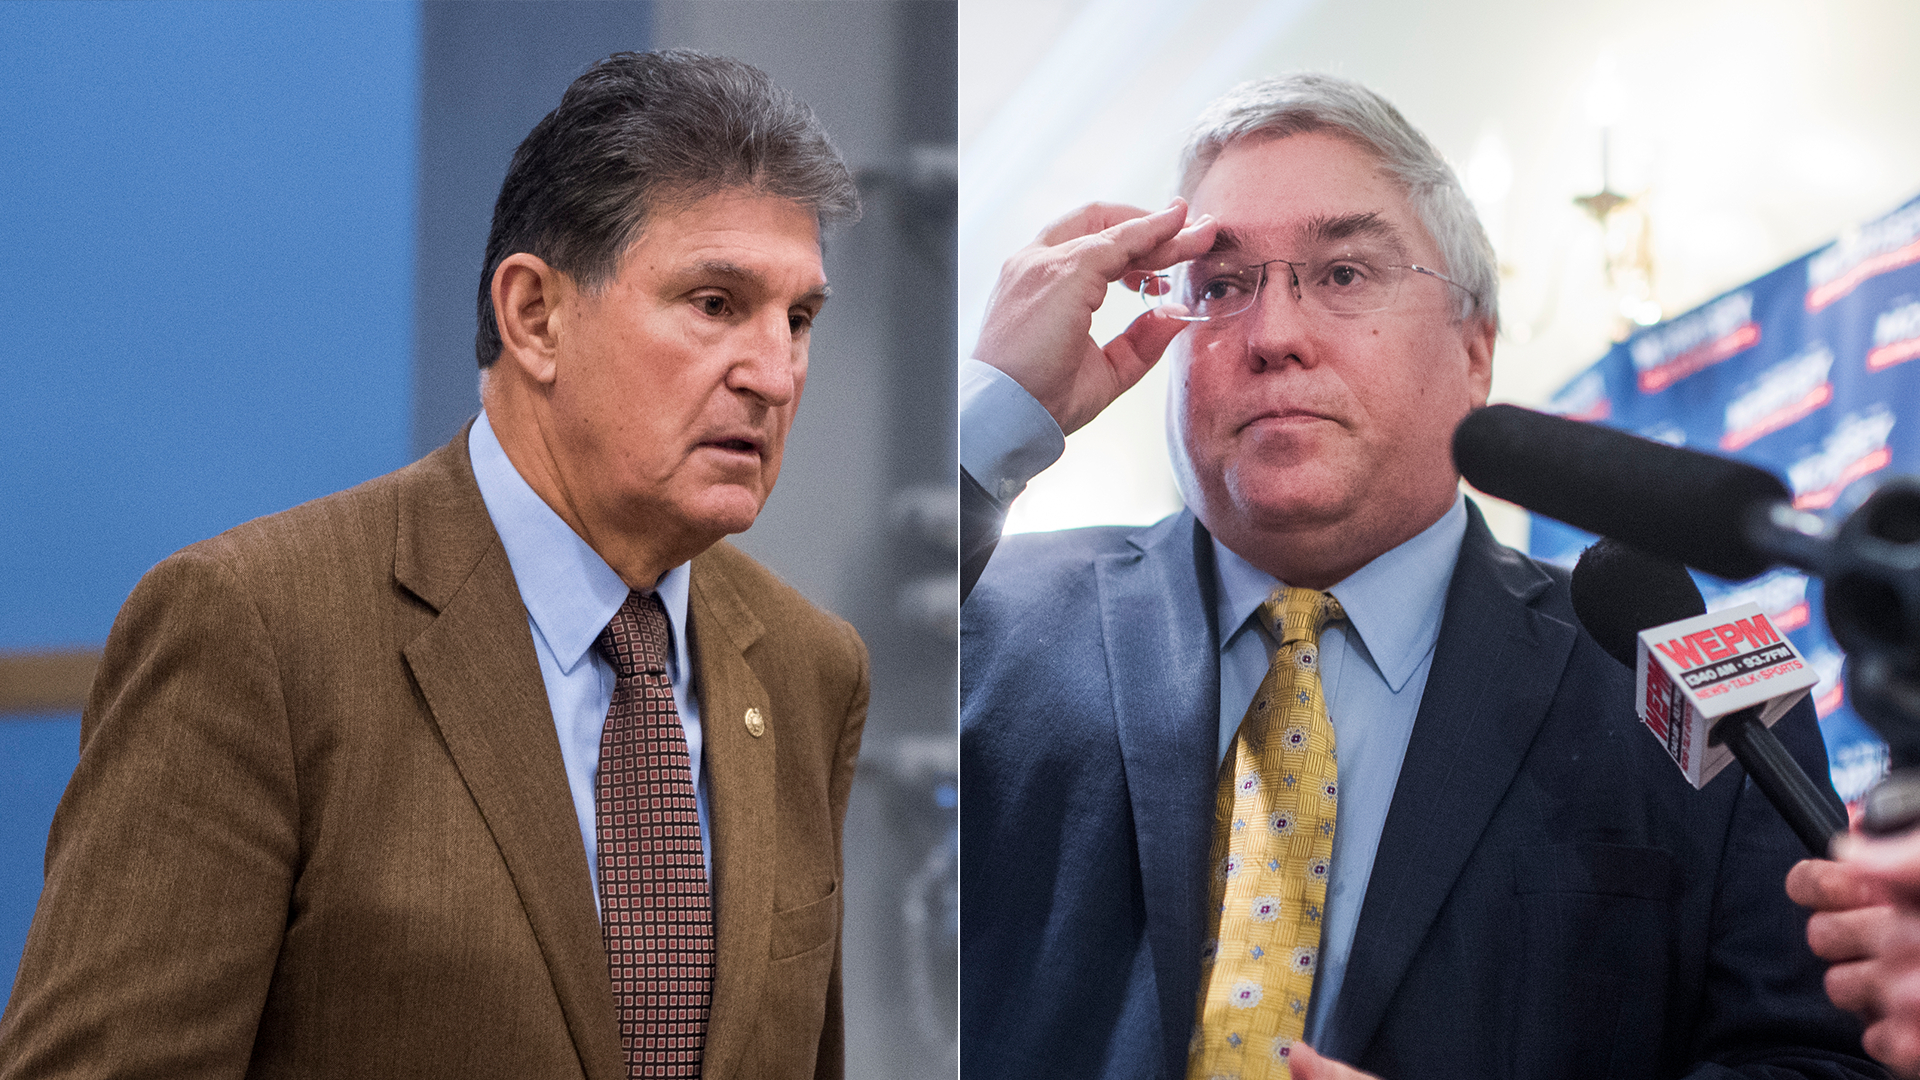 Sen. Joe Manchin and West Virginia Attorney General Patrick Morrisey